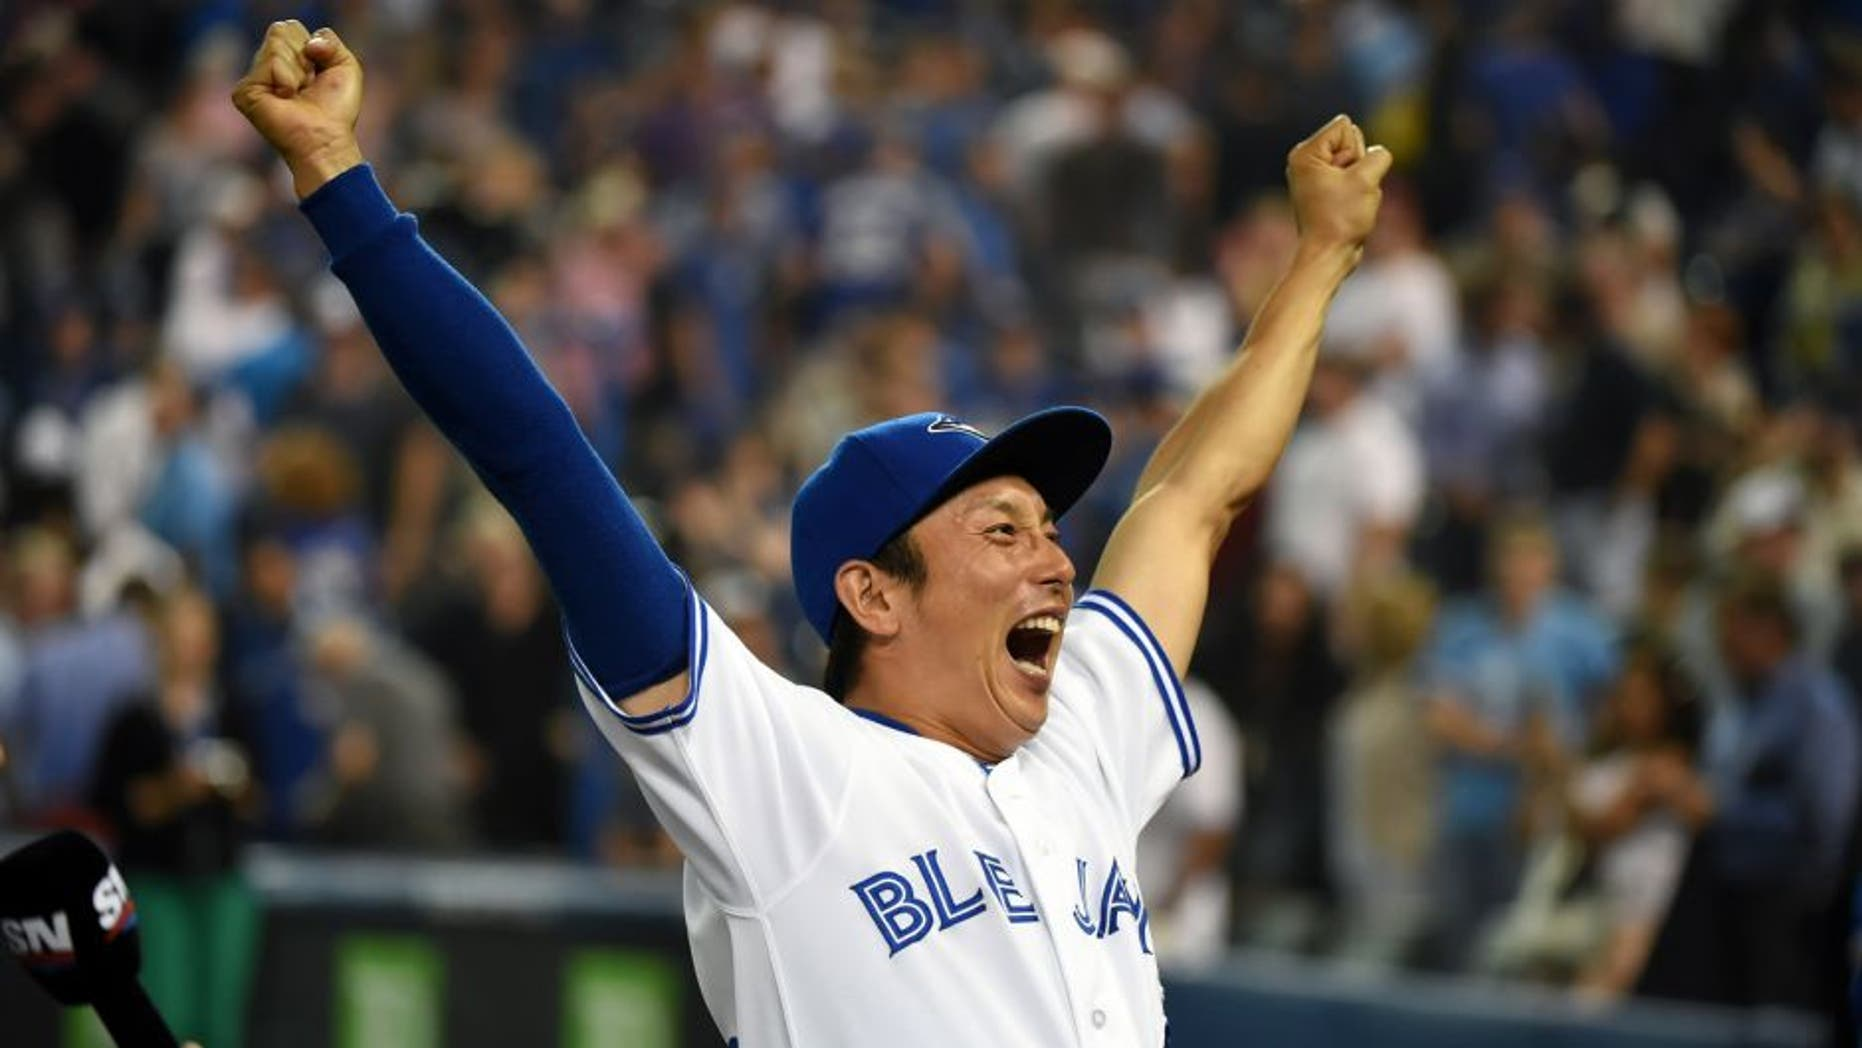 Sep 2, 2015; Toronto, Ontario, CAN; Toronto Blue Jays infielder Munenori Kawasaki (66) reacts to fans cheers during post-game celebrations afterthe Jays defeated Cleveland Indians 5-1 at Rogers Centre. Mandatory Credit: Dan Hamilton-USA TODAY Sports